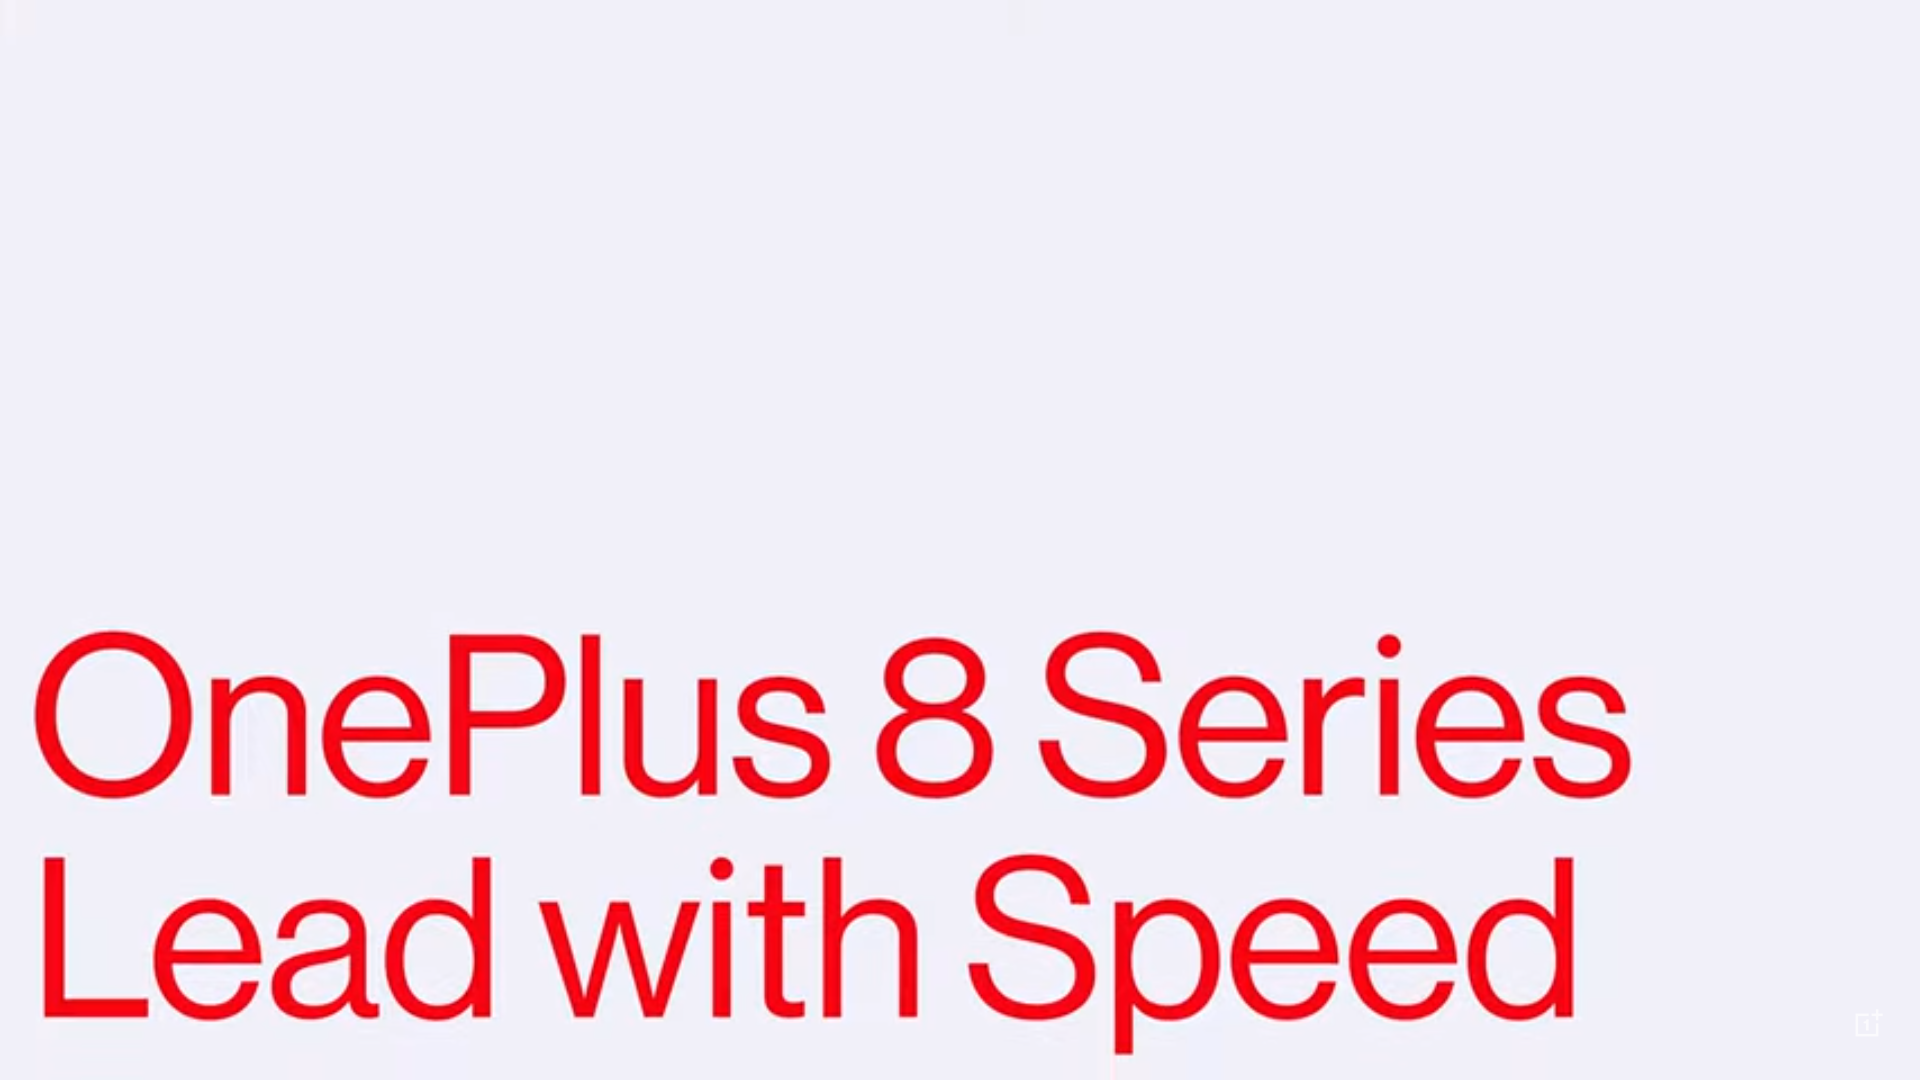 Oneplus Confirms An April 2020 Launch For The 8 Series